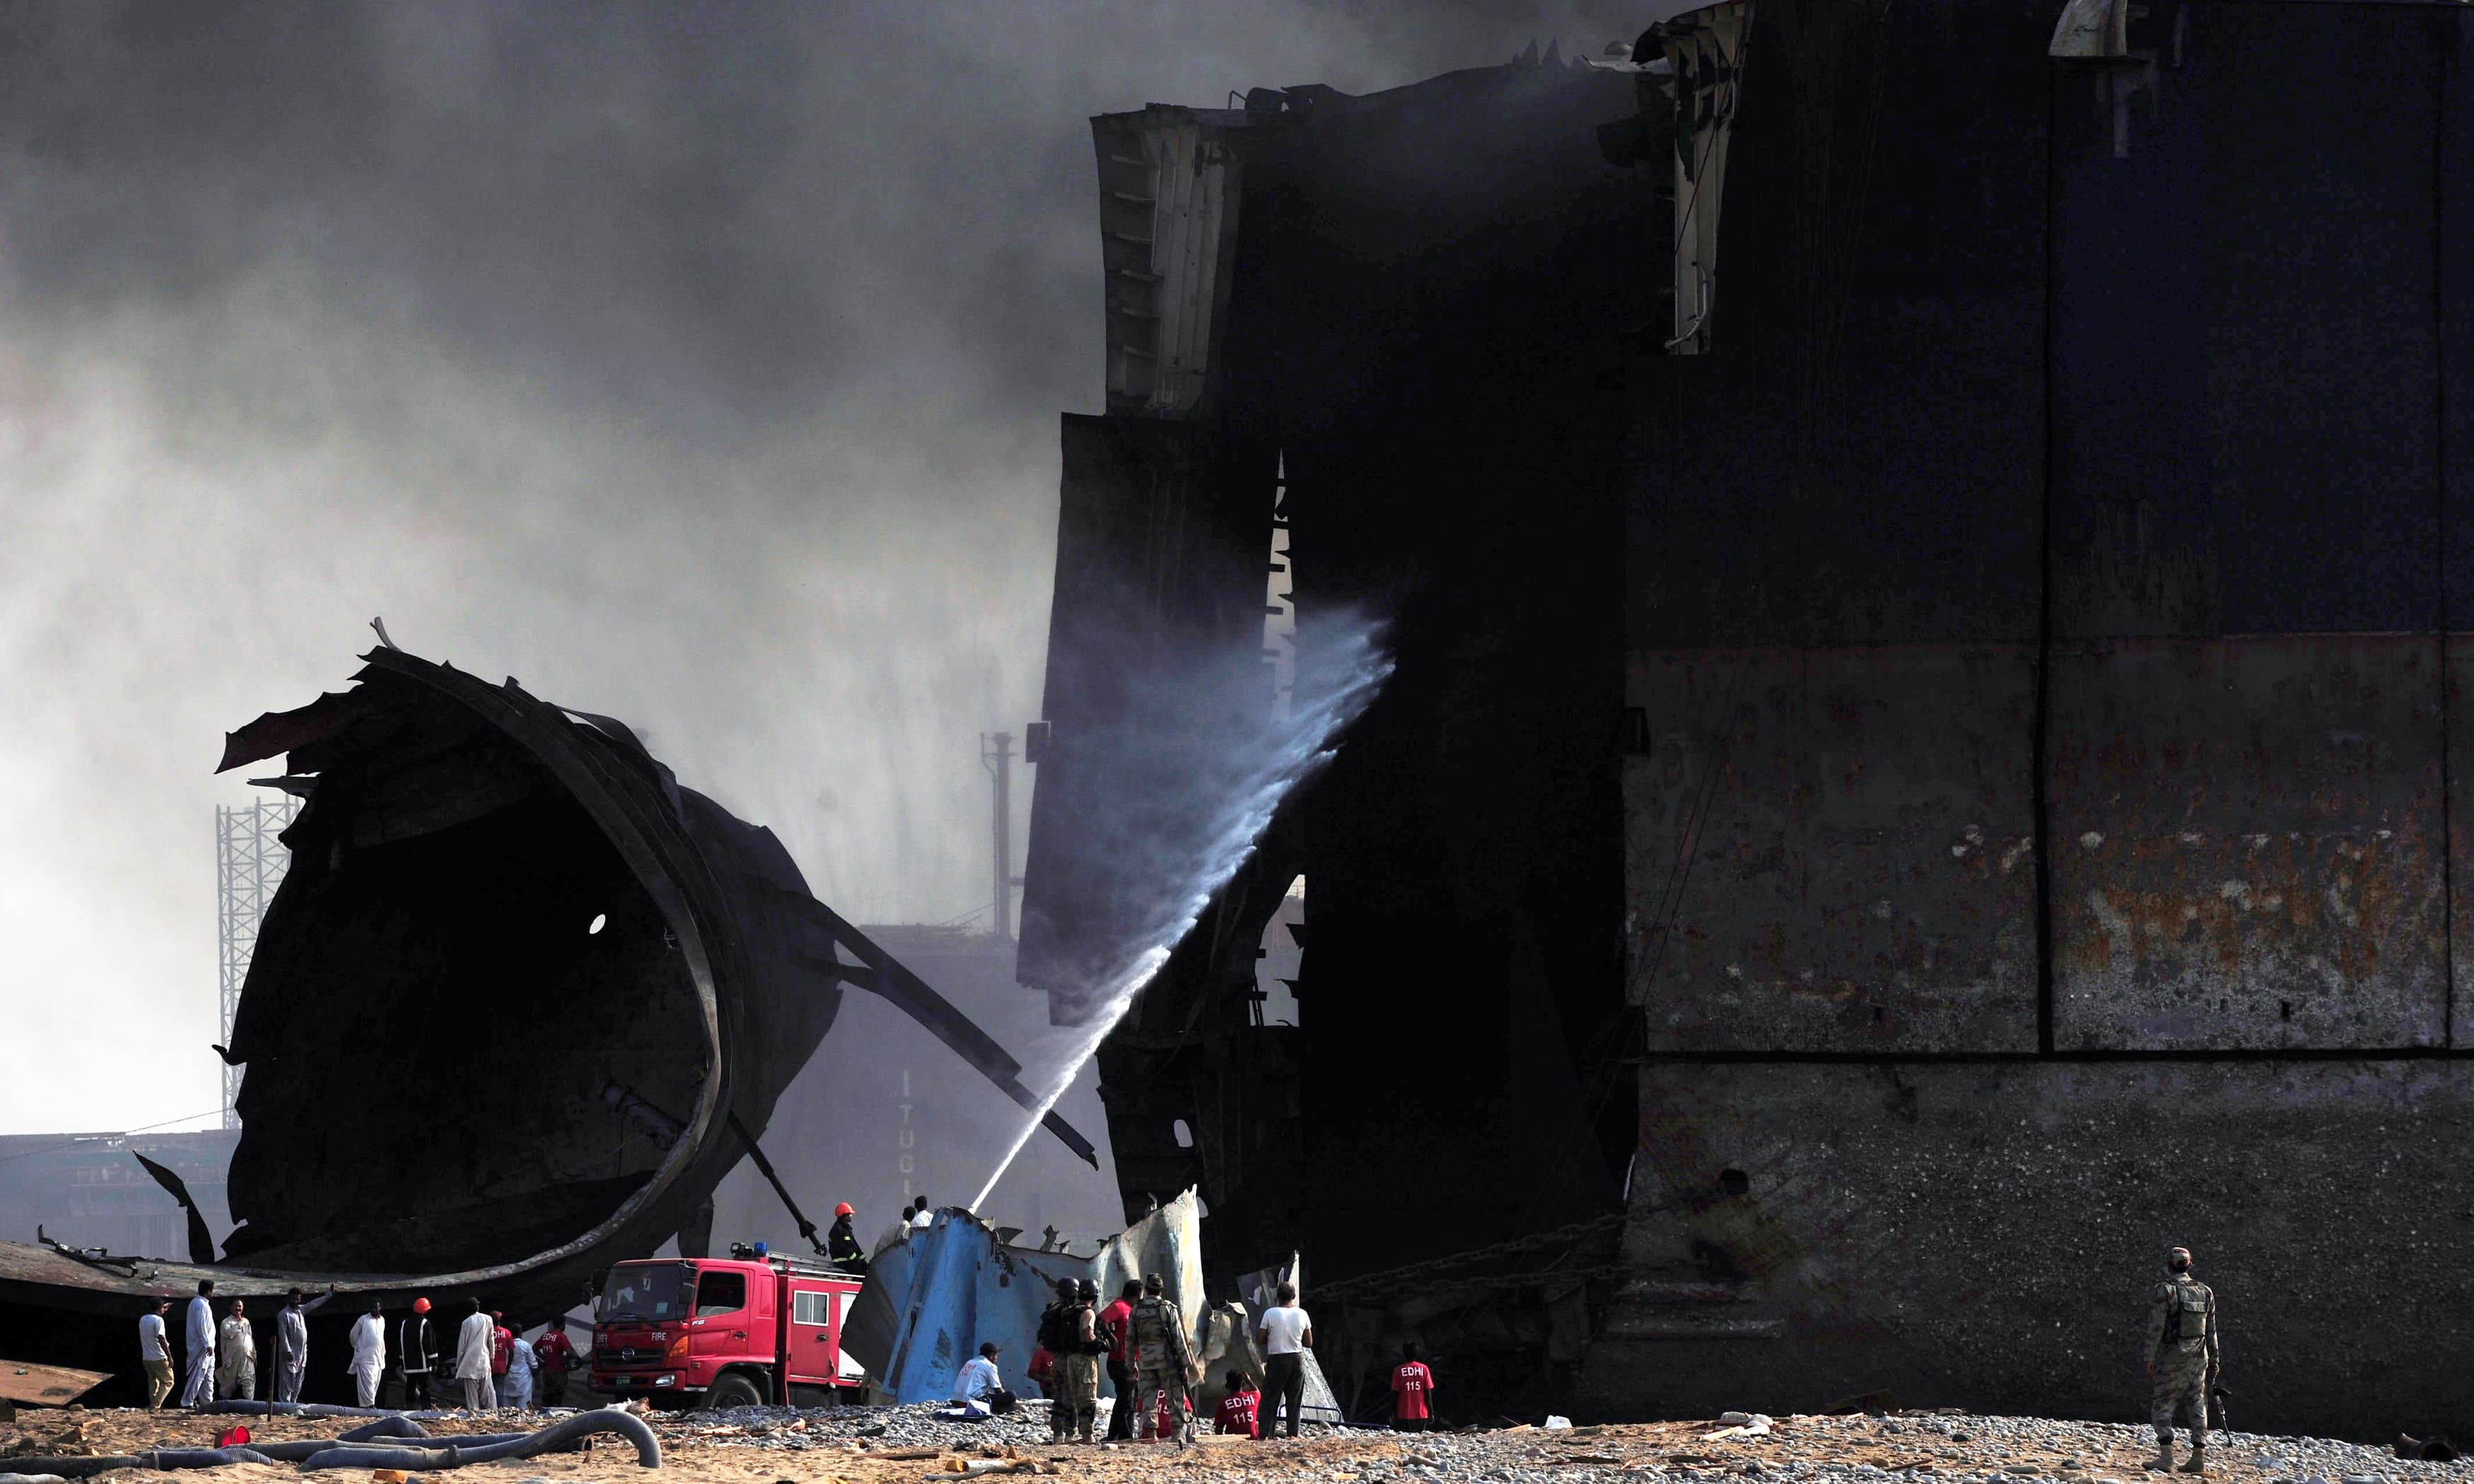 Firefighters use a hose as they attempt to extinguish a fire on a ship after a gas cylinder explosion at the Gadani shipbreaking yard. —AFP